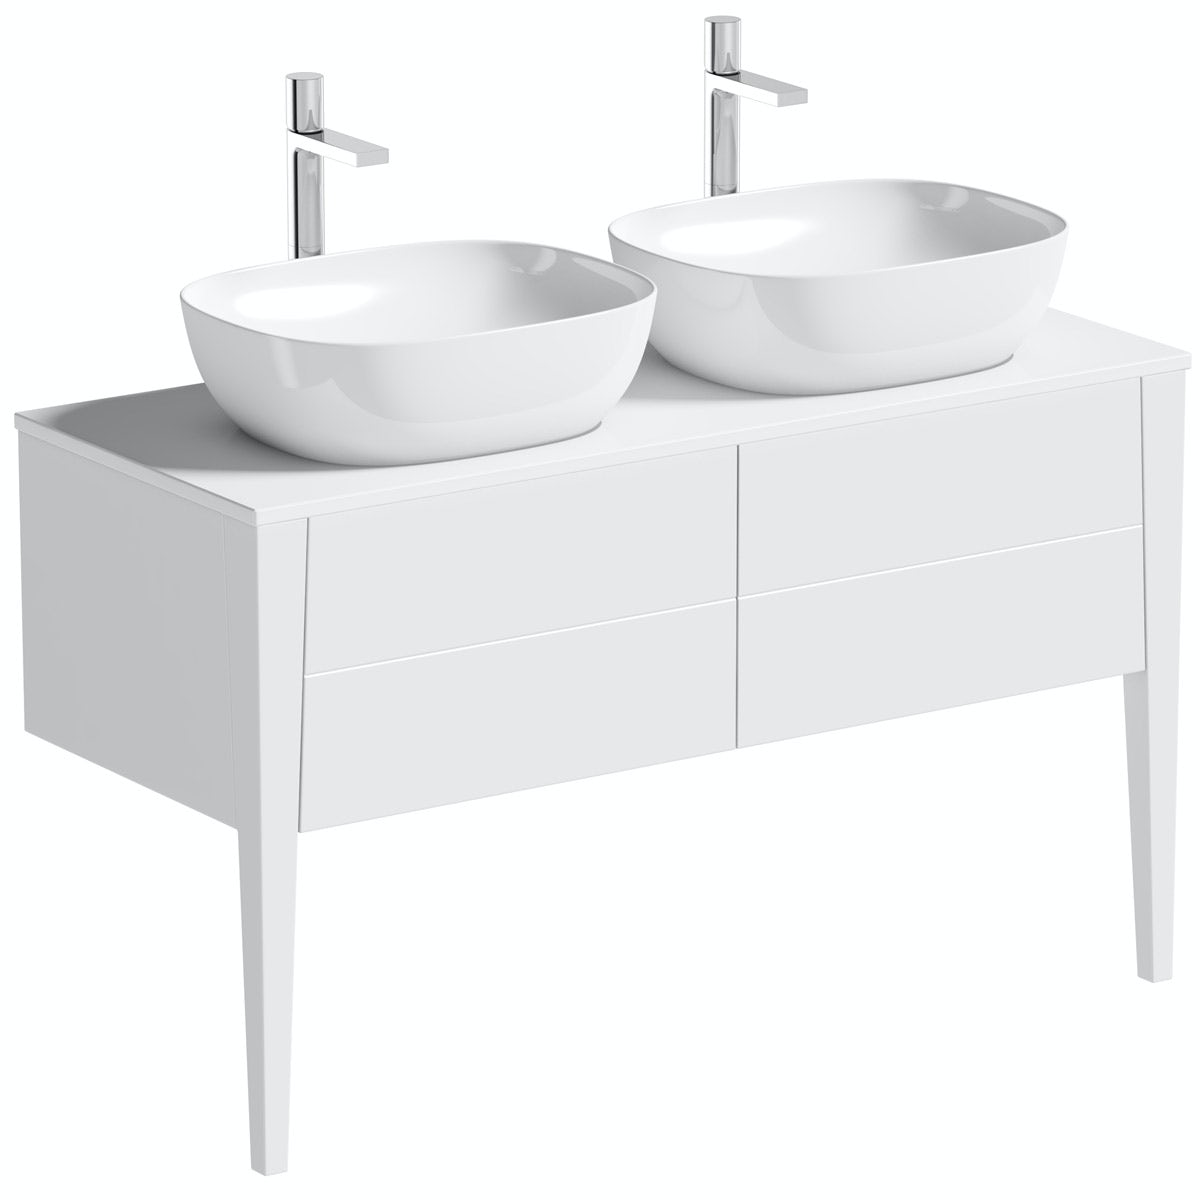 Mode Hale white gloss countertop double basin vanity unit 1200mm